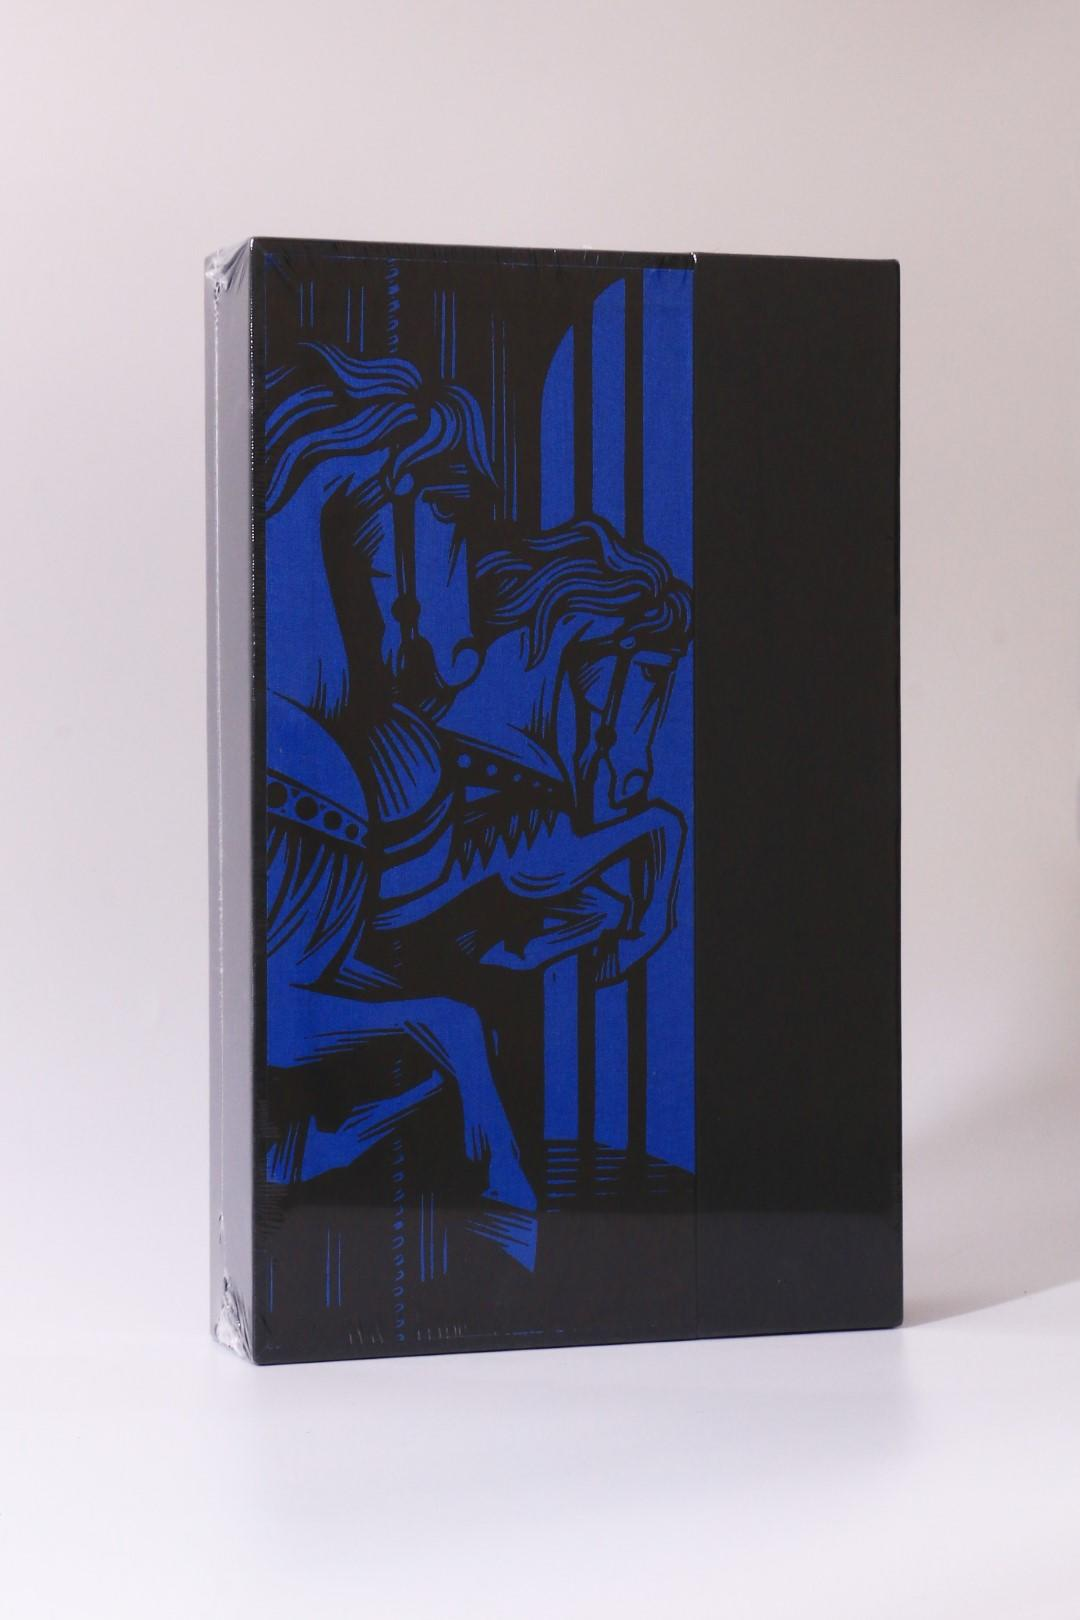 Ray Bradbury - Something Wicked this way Comes - Centipede Press, 2021, Signed Limited Edition.